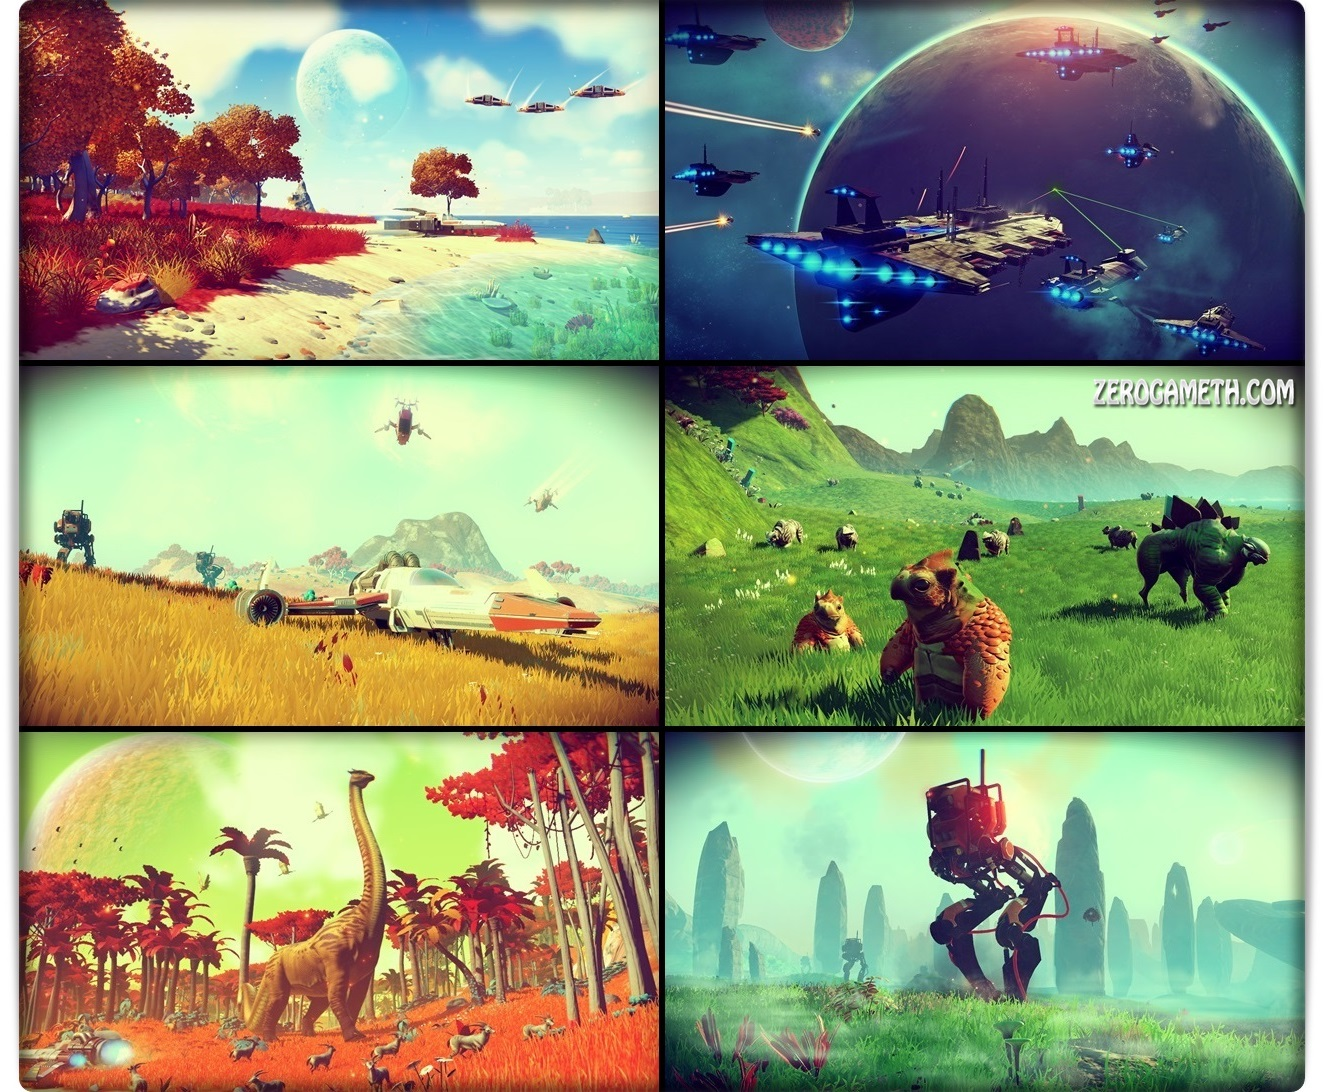 Pc download No man's sky